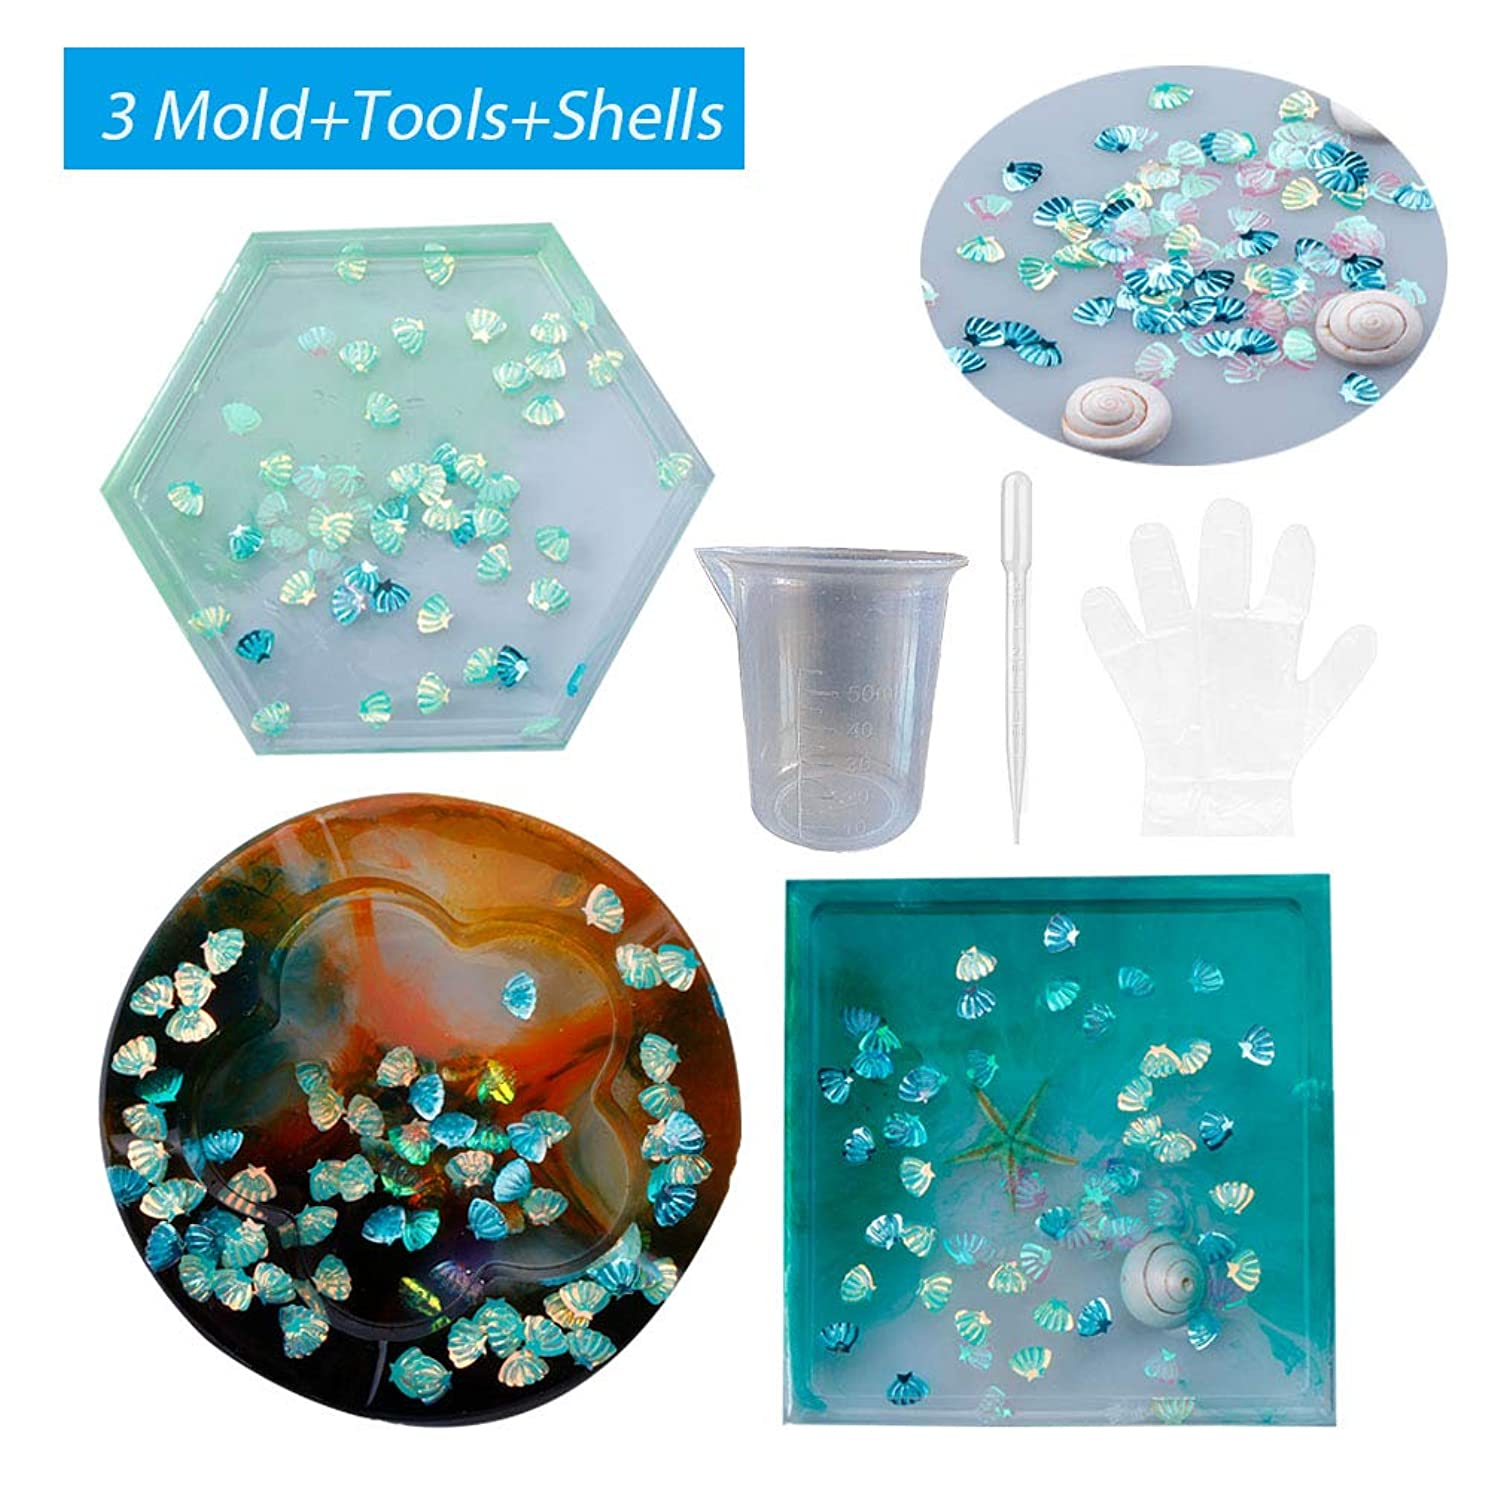 SEEKVER 3 Pack DIY Silicone Molds,2 Coaster Silicone Molds and 1 Ashtray Silicone Molds,Includ Round,Square Molds for Casting with Resin,Cement